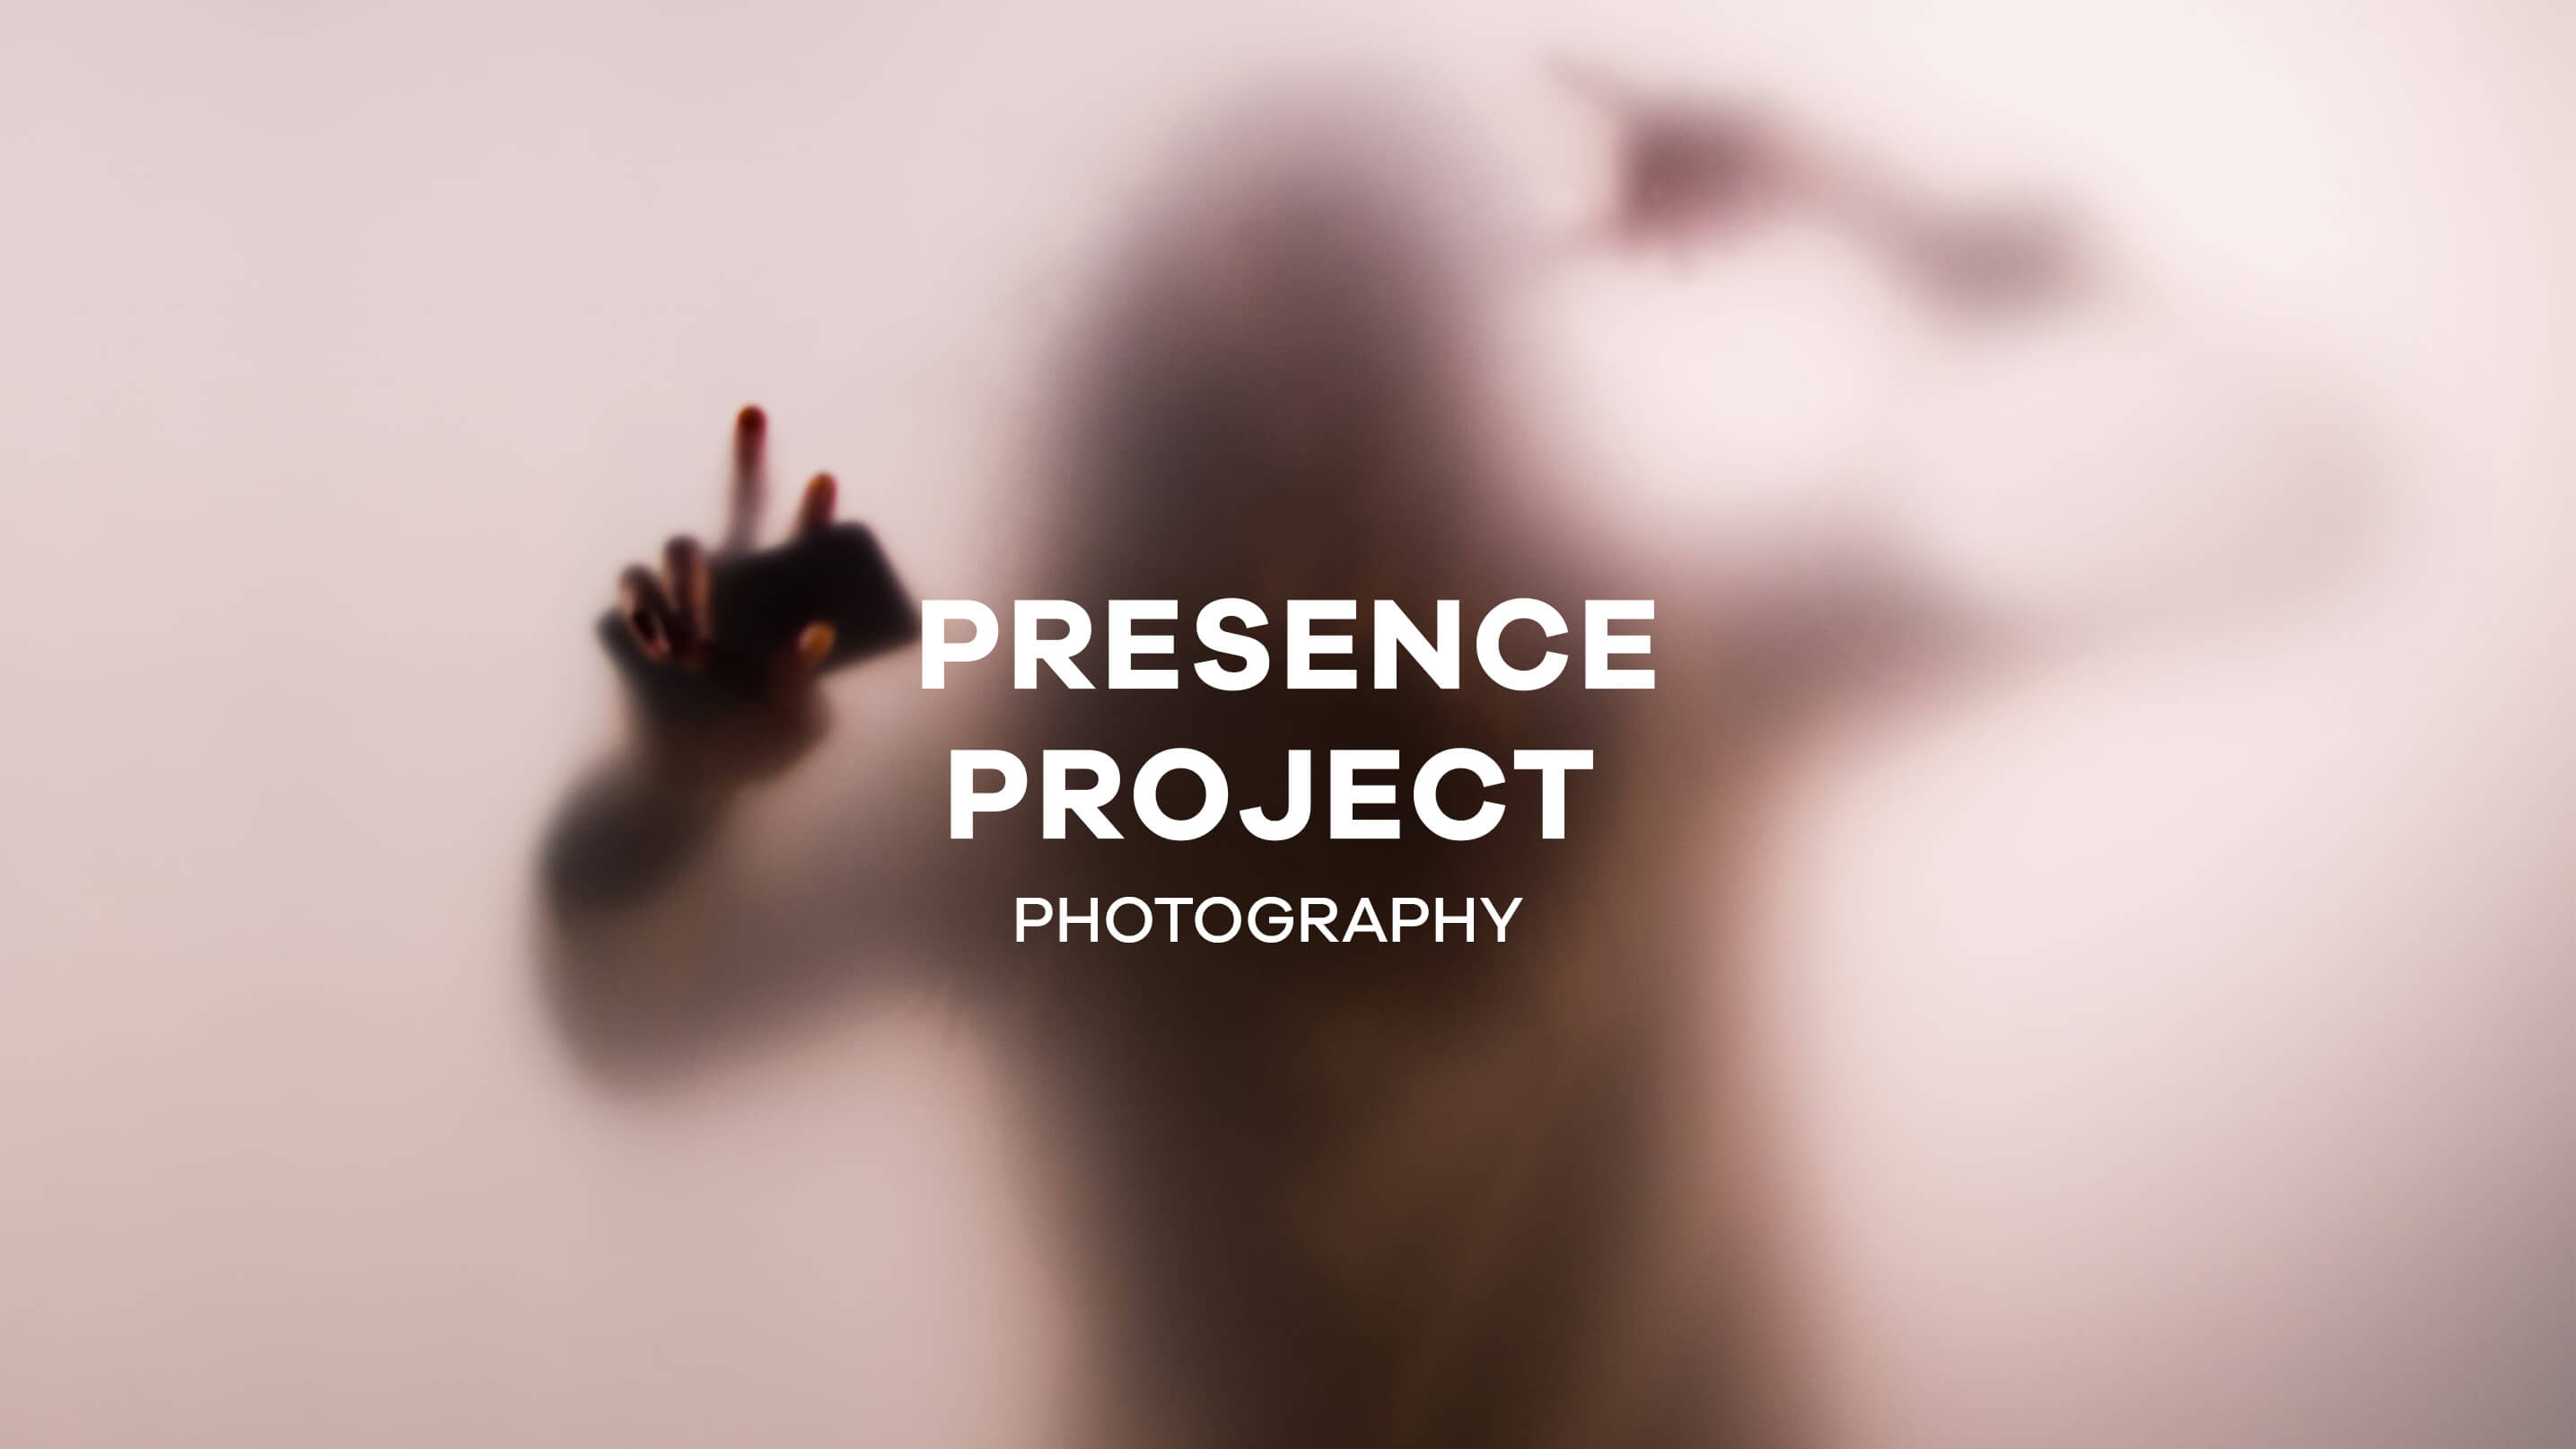 Presence Project